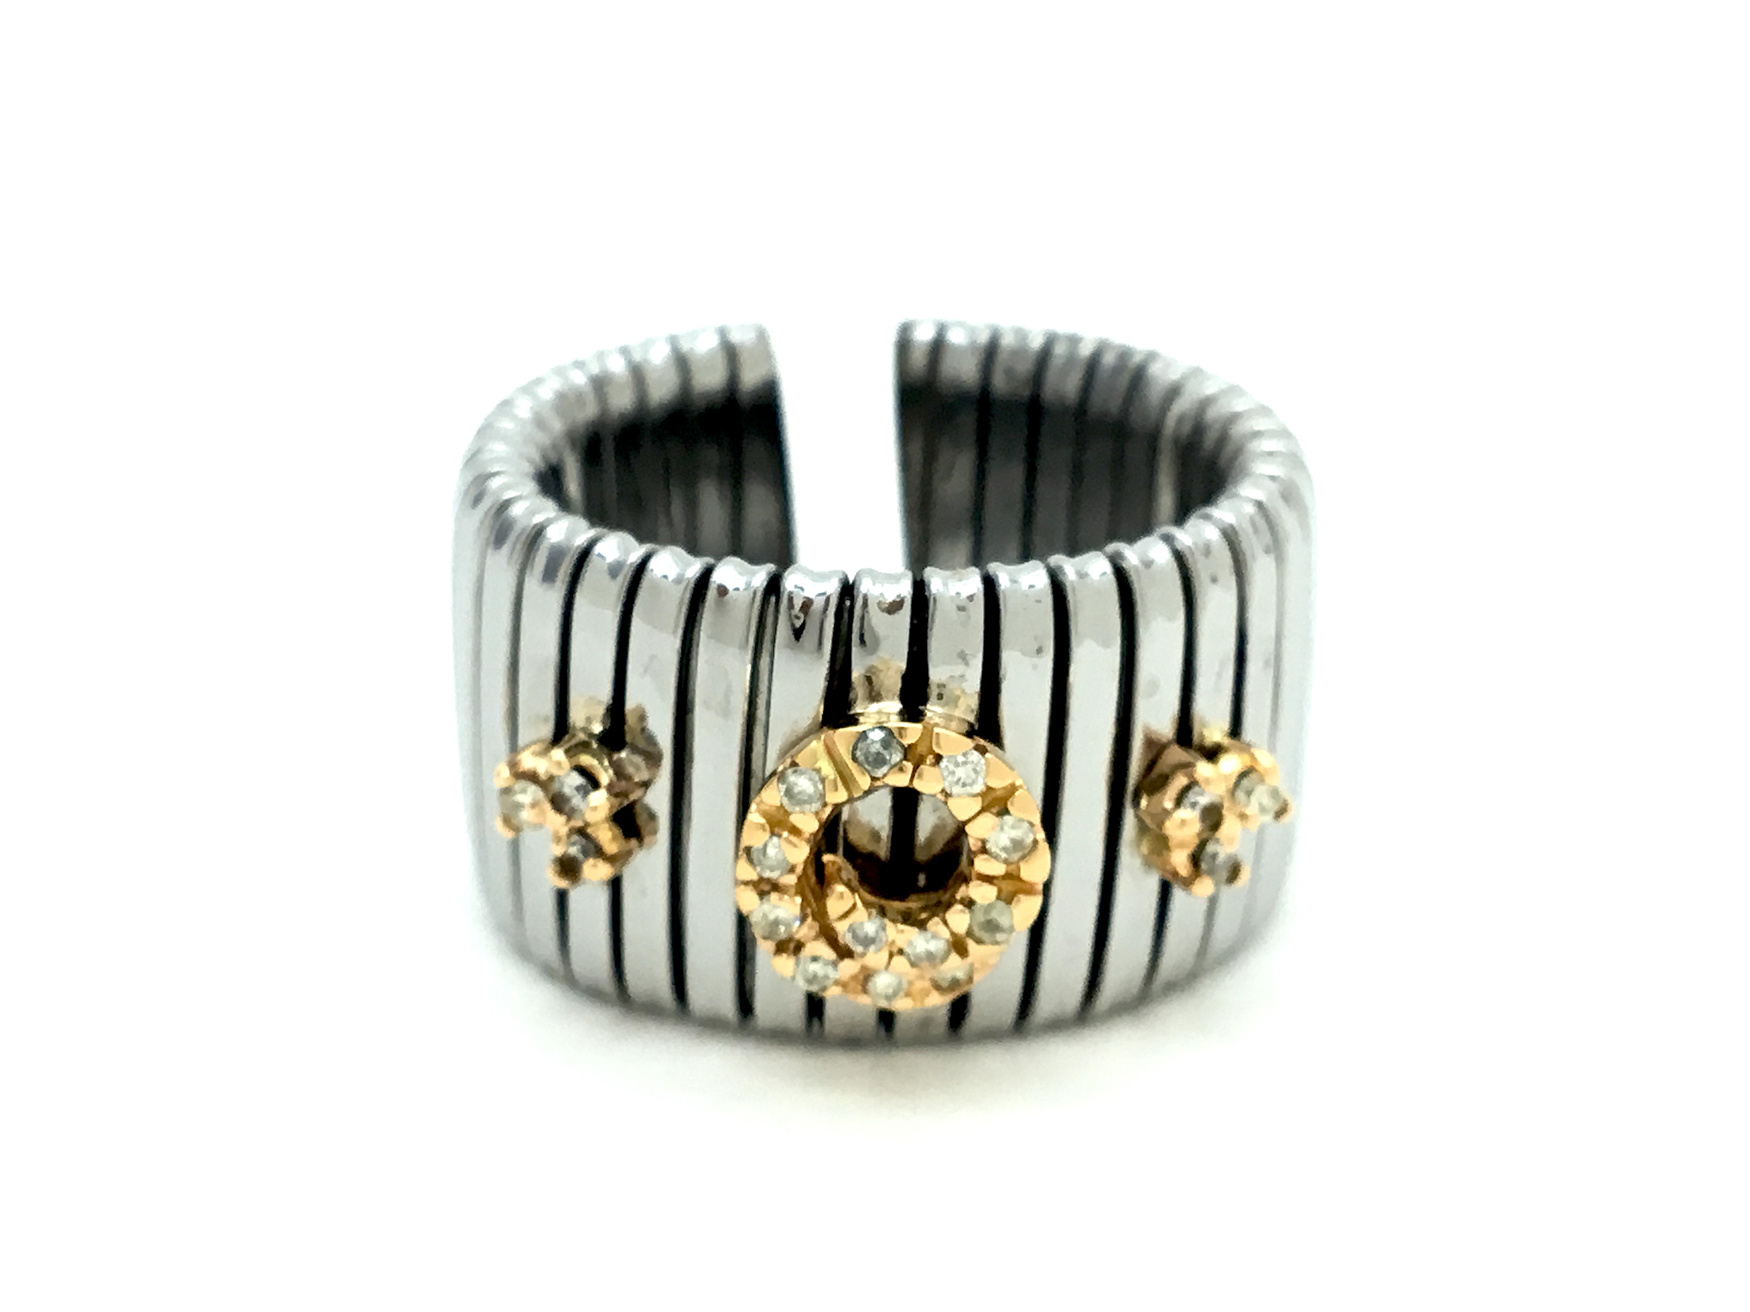 Sensi joyas jewellery Granada silver engagementGOLD AND STEEL RING